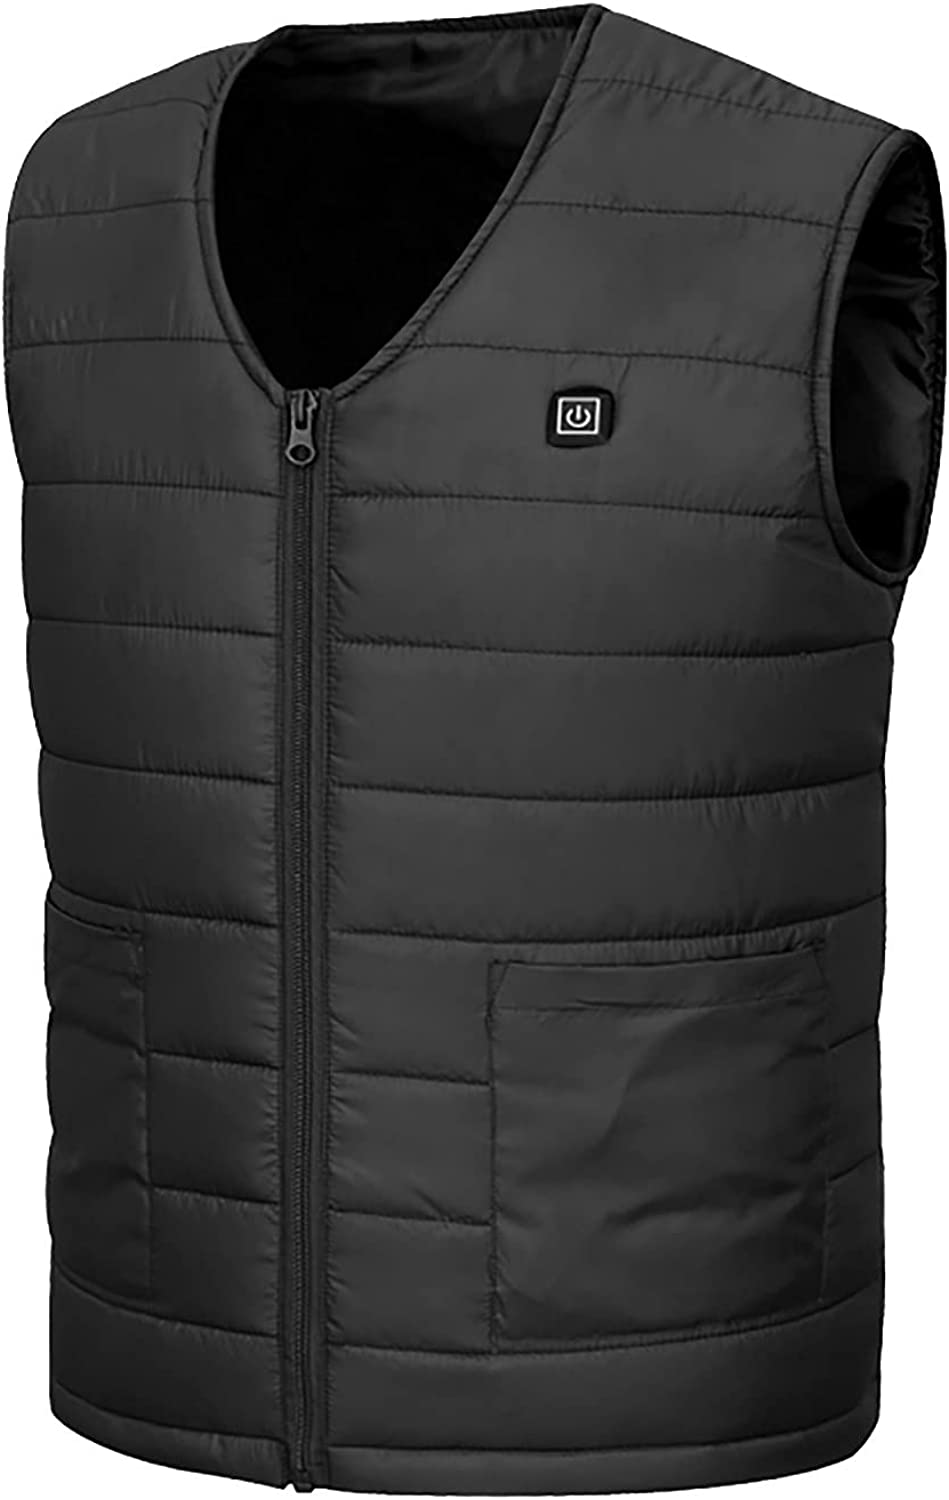 Heated Vest Time sale for Men Women Ves New Shipping Free Jacket Winter Heating